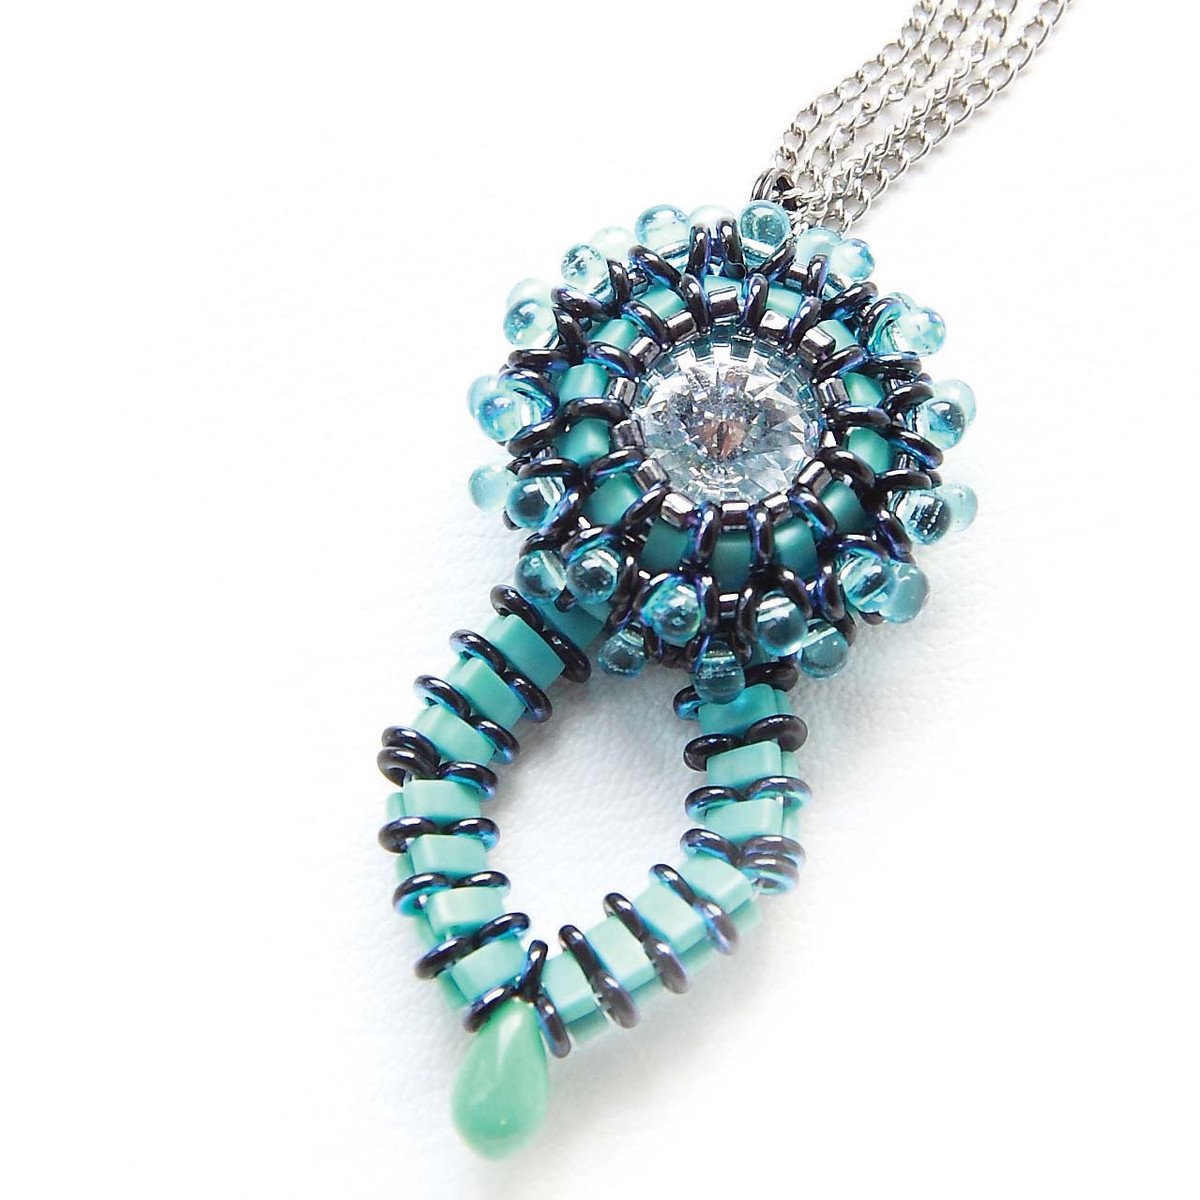 WILD FLOWER - Free Jewelry Making Project complements of